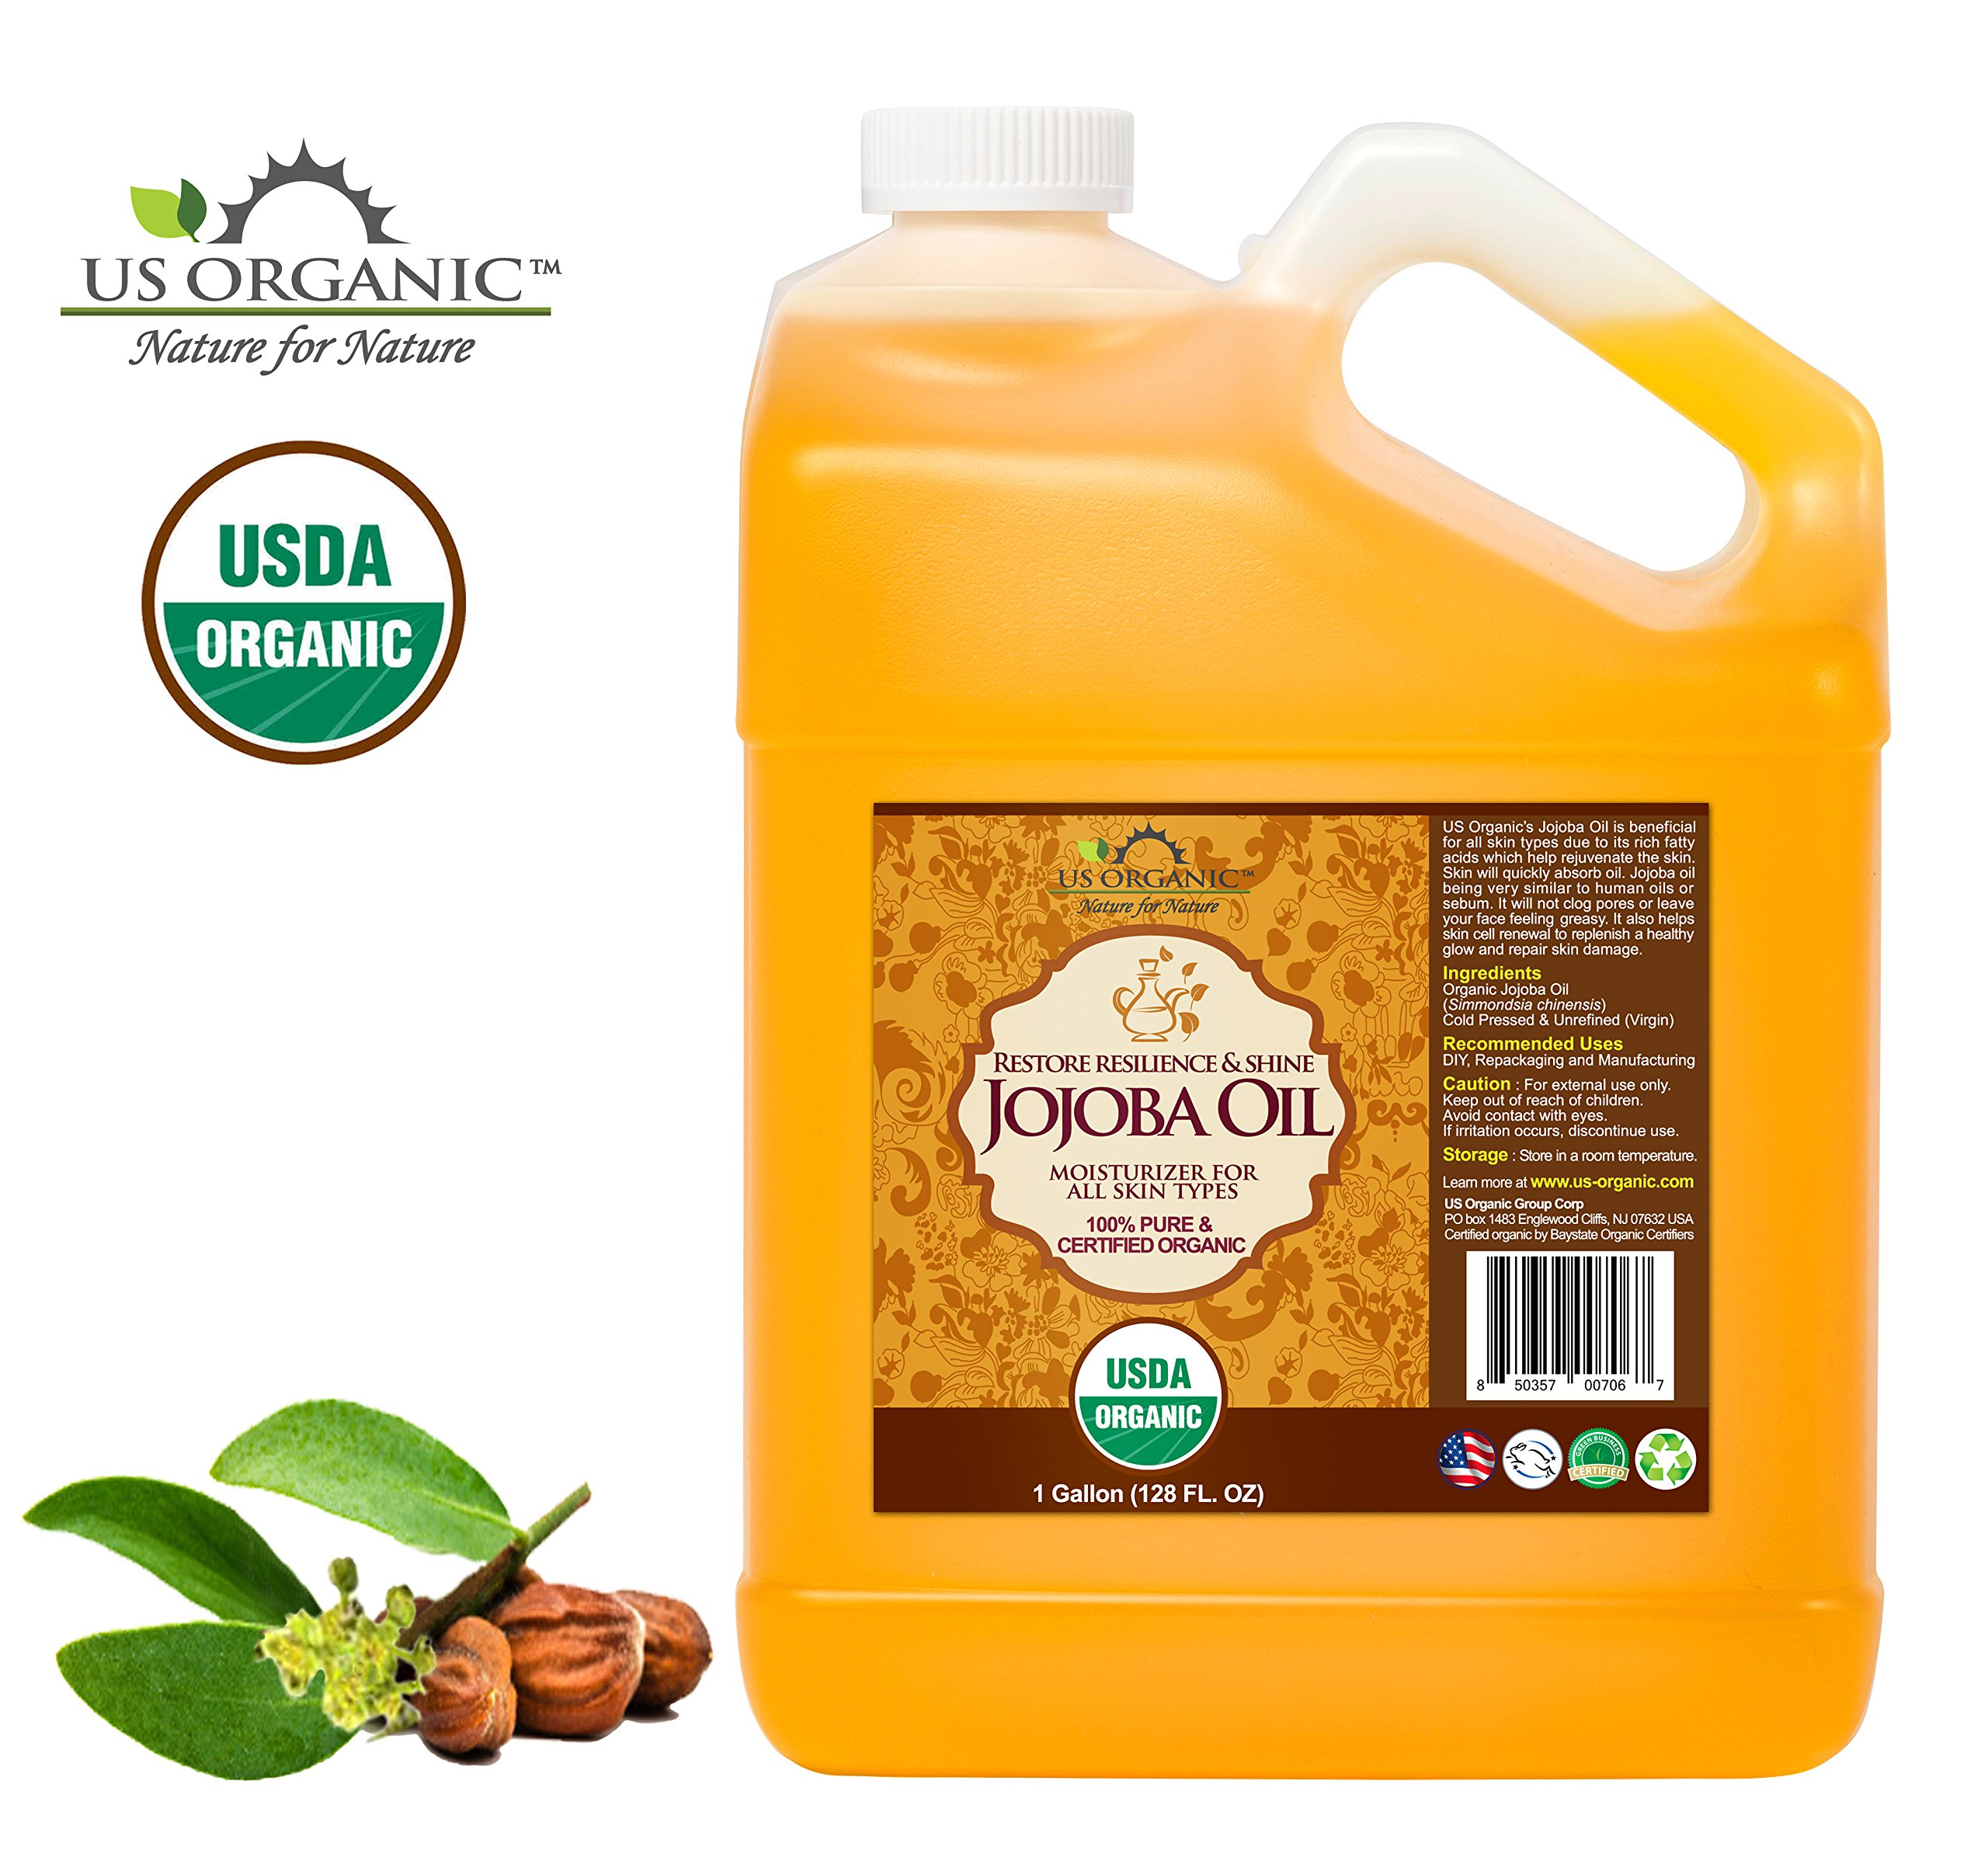 US Organic Jojoba Oil bulk pack, USDA Certified Organic,100% Pure & Natural, Cold Pressed Virgin, Unrefined, Haxane Free, 1 Gallon (128 Ounce)